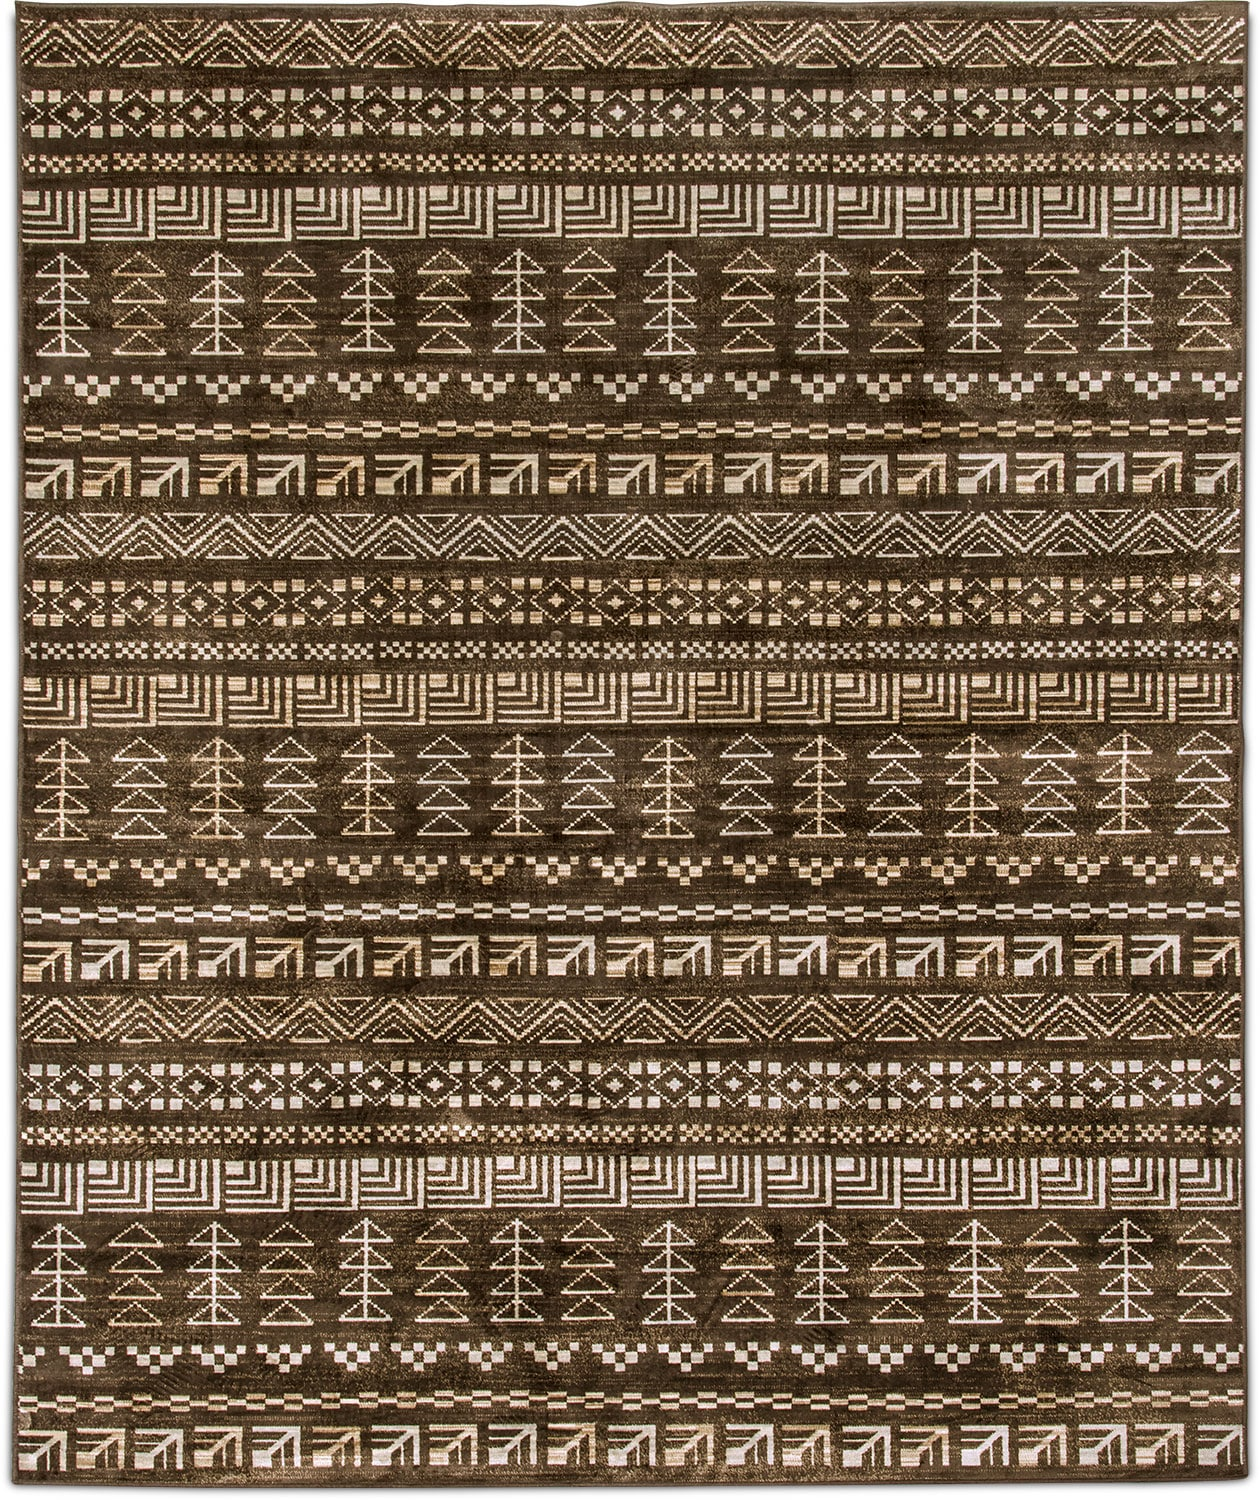 Rugs - Sonoma Area Rug - Brown and Ivory